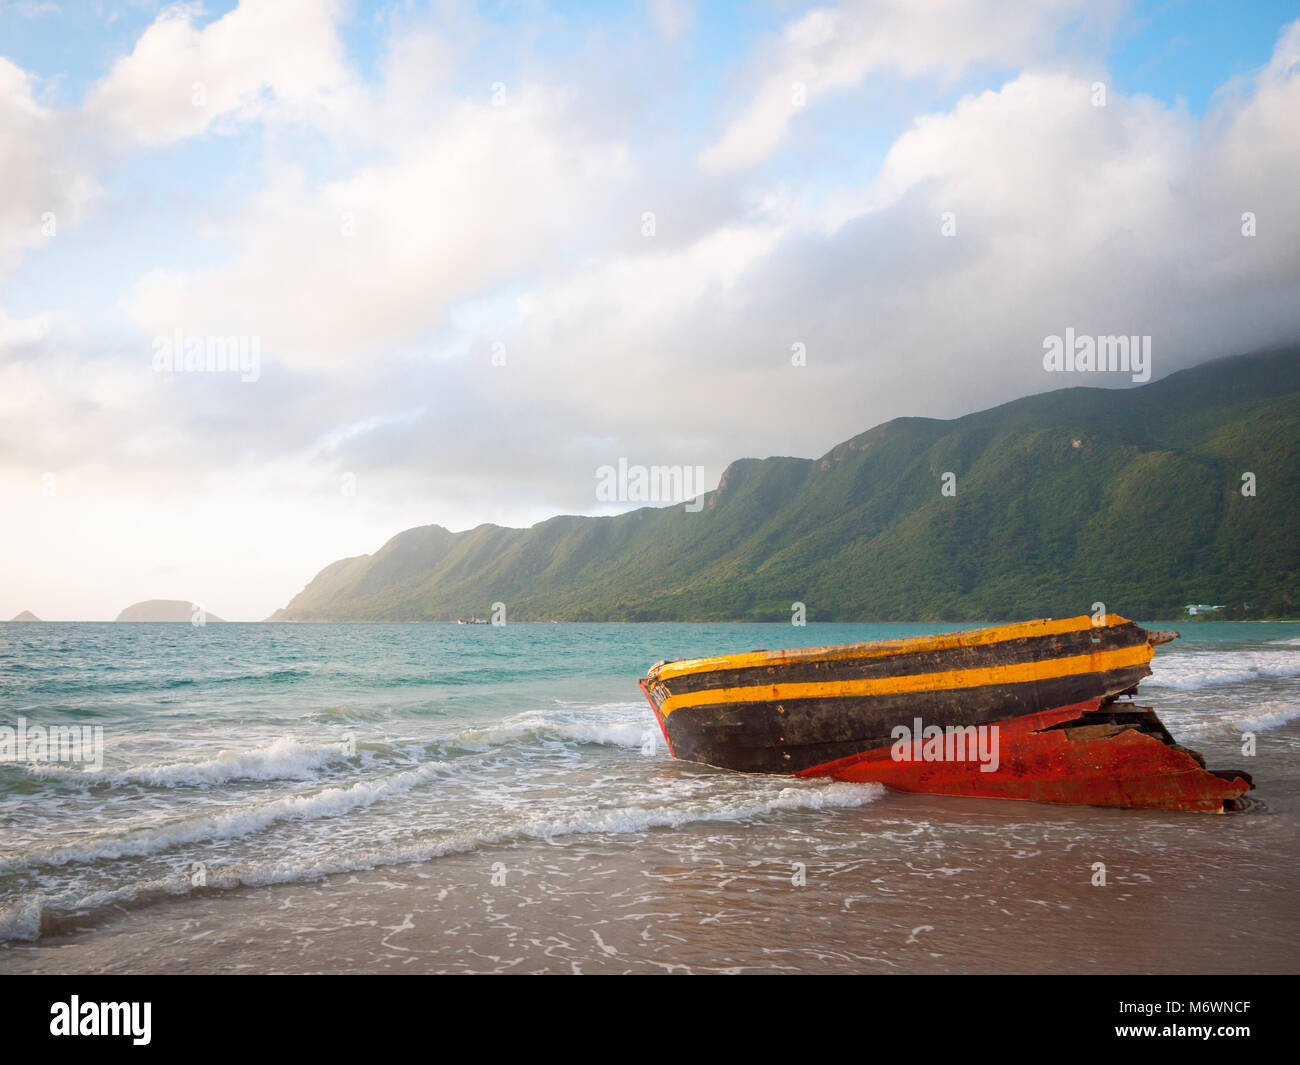 A shipwreck washed ashore Bai An Hai Beach on Con Son Island, Con Dao Islands (Con Dao Archipelago), Vietnam. - Stock Image